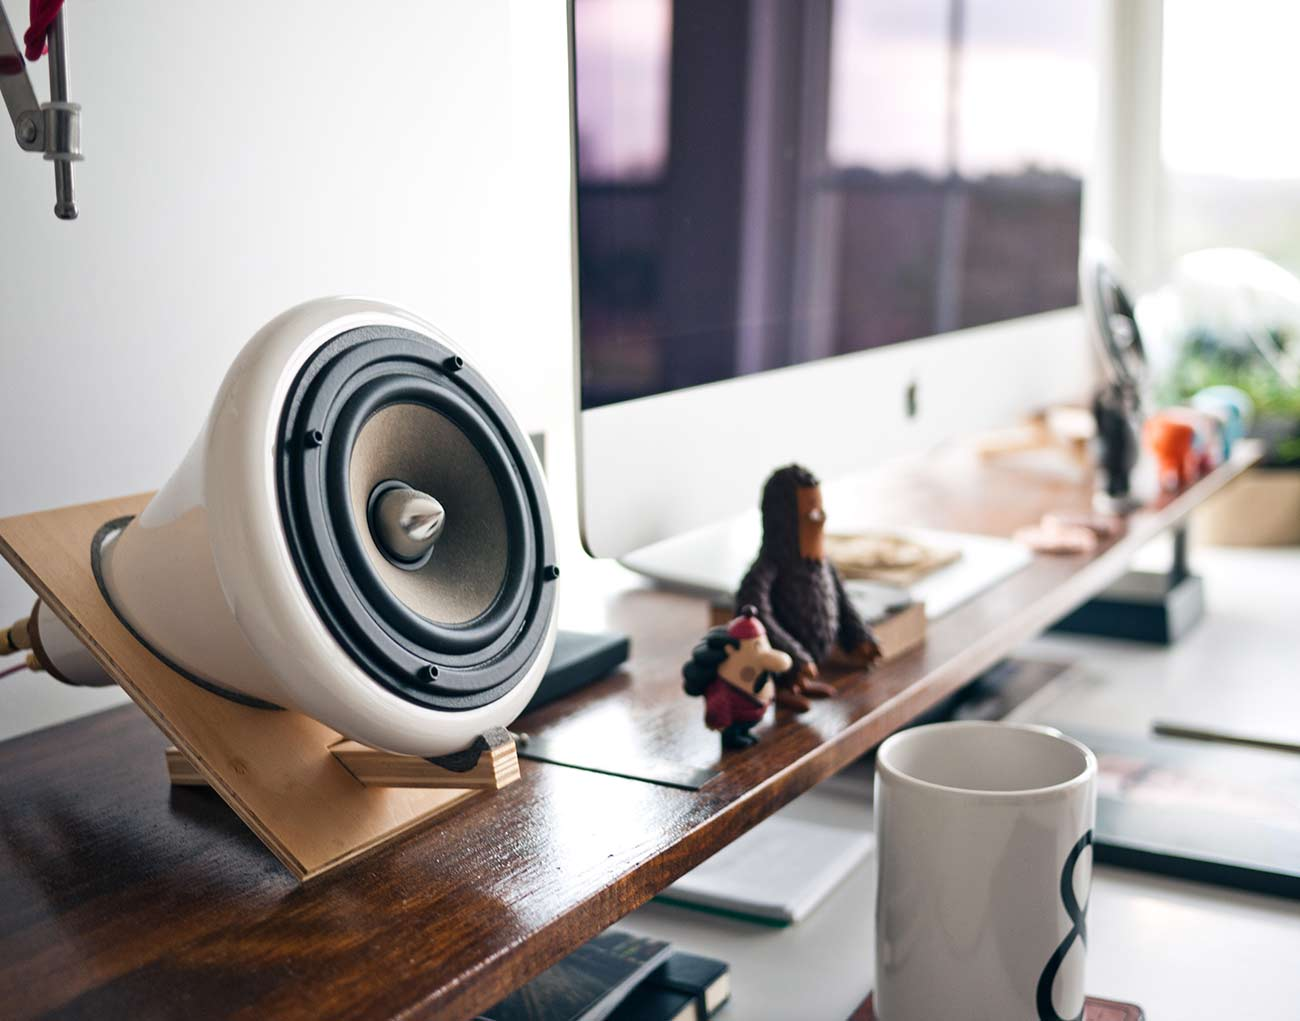 Perfect way to decorate your work space